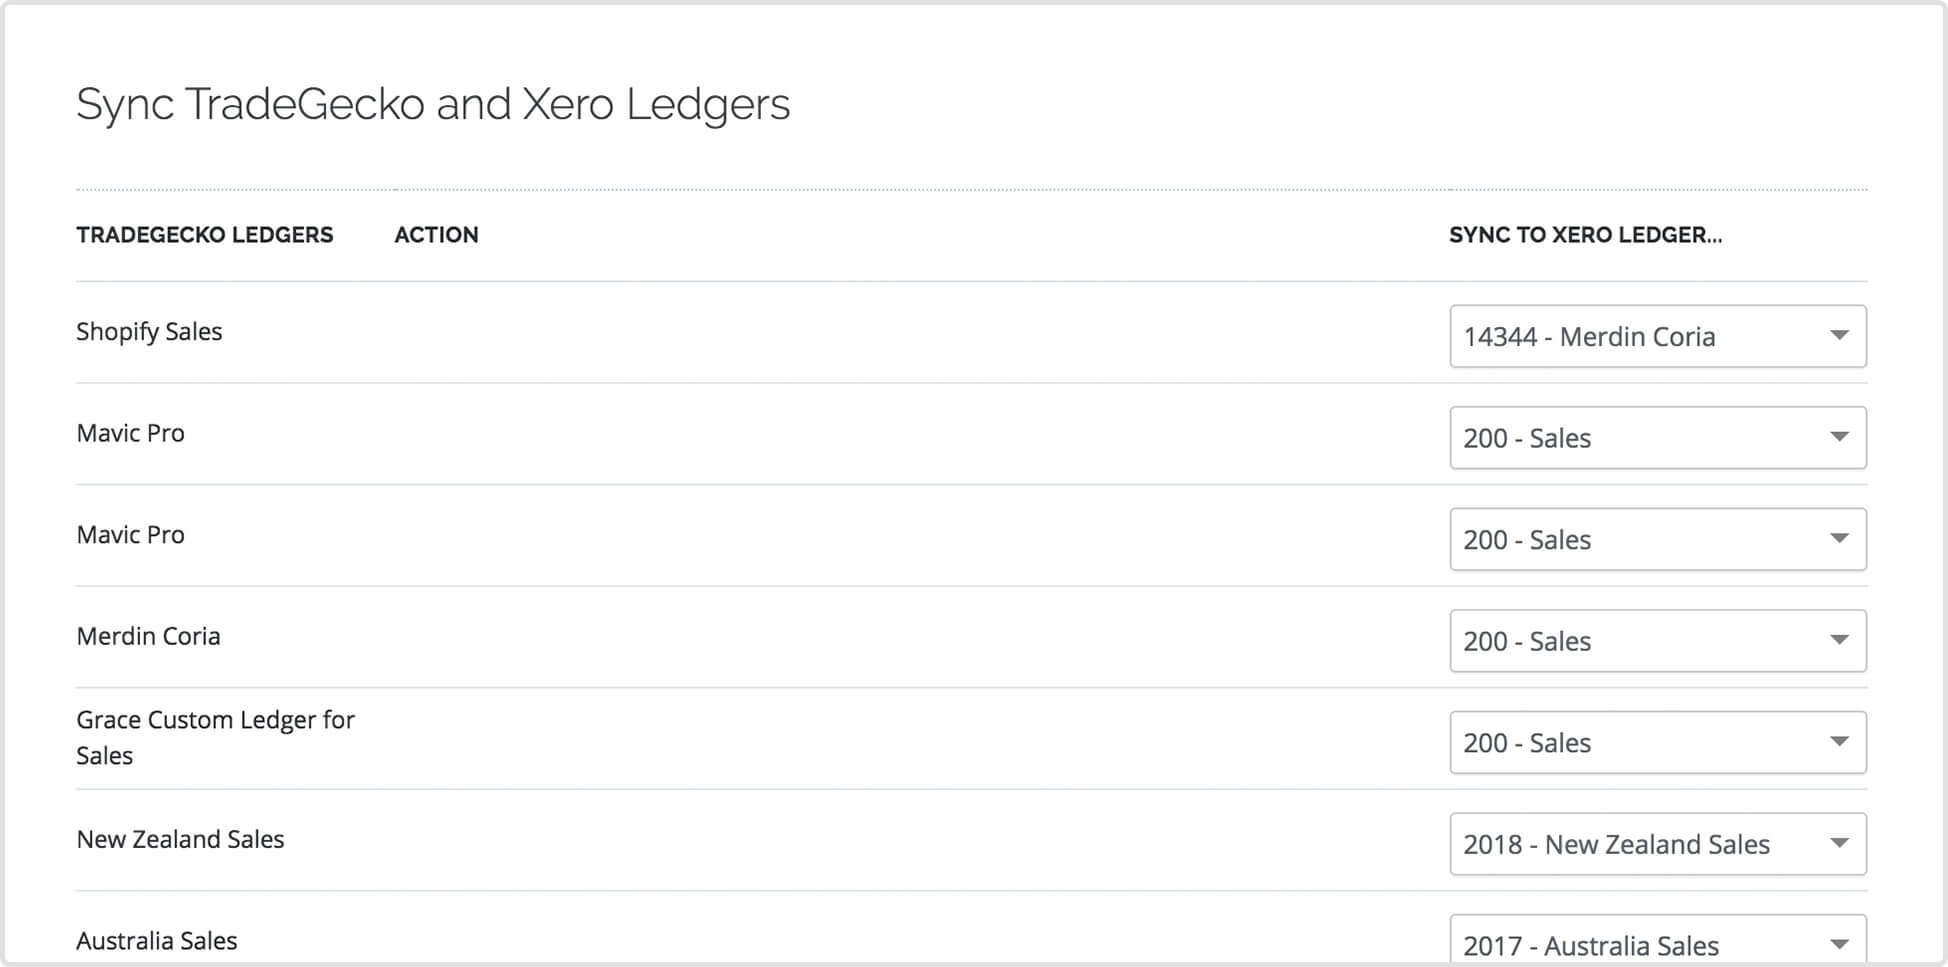 xero-ledgers.jpg